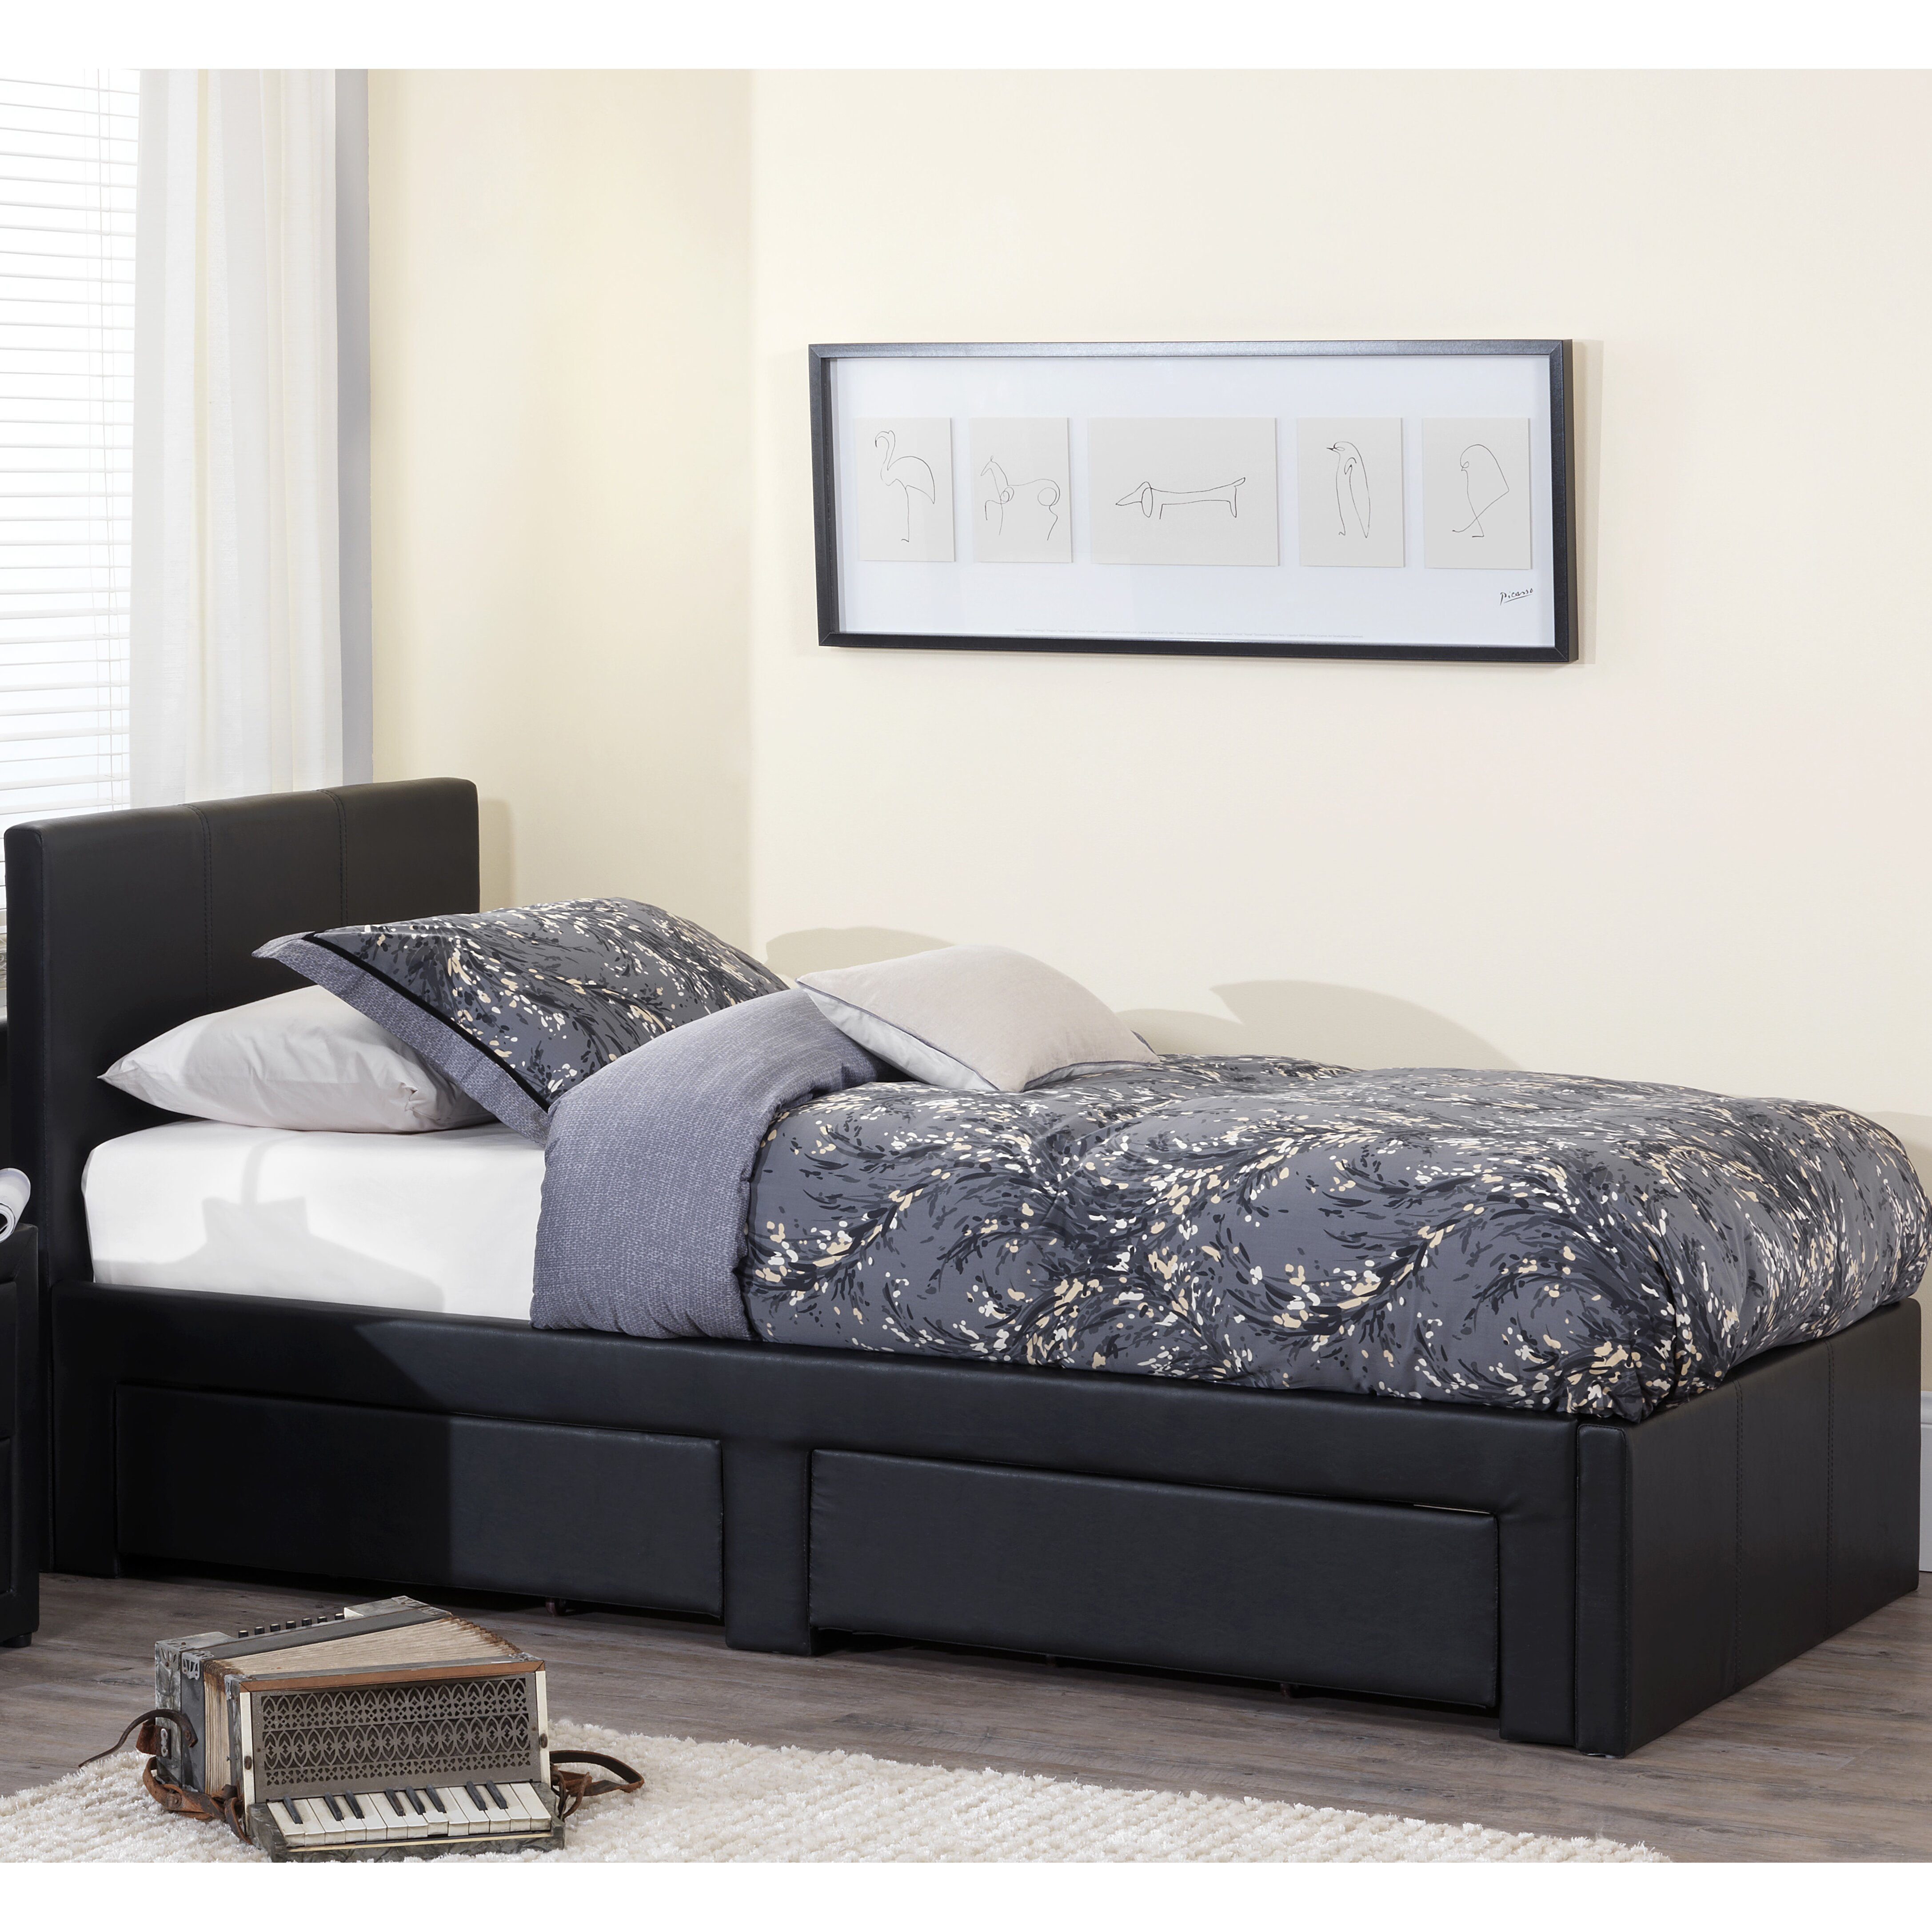 Home Haus Surat Single Upholstered Storage Bed Reviews